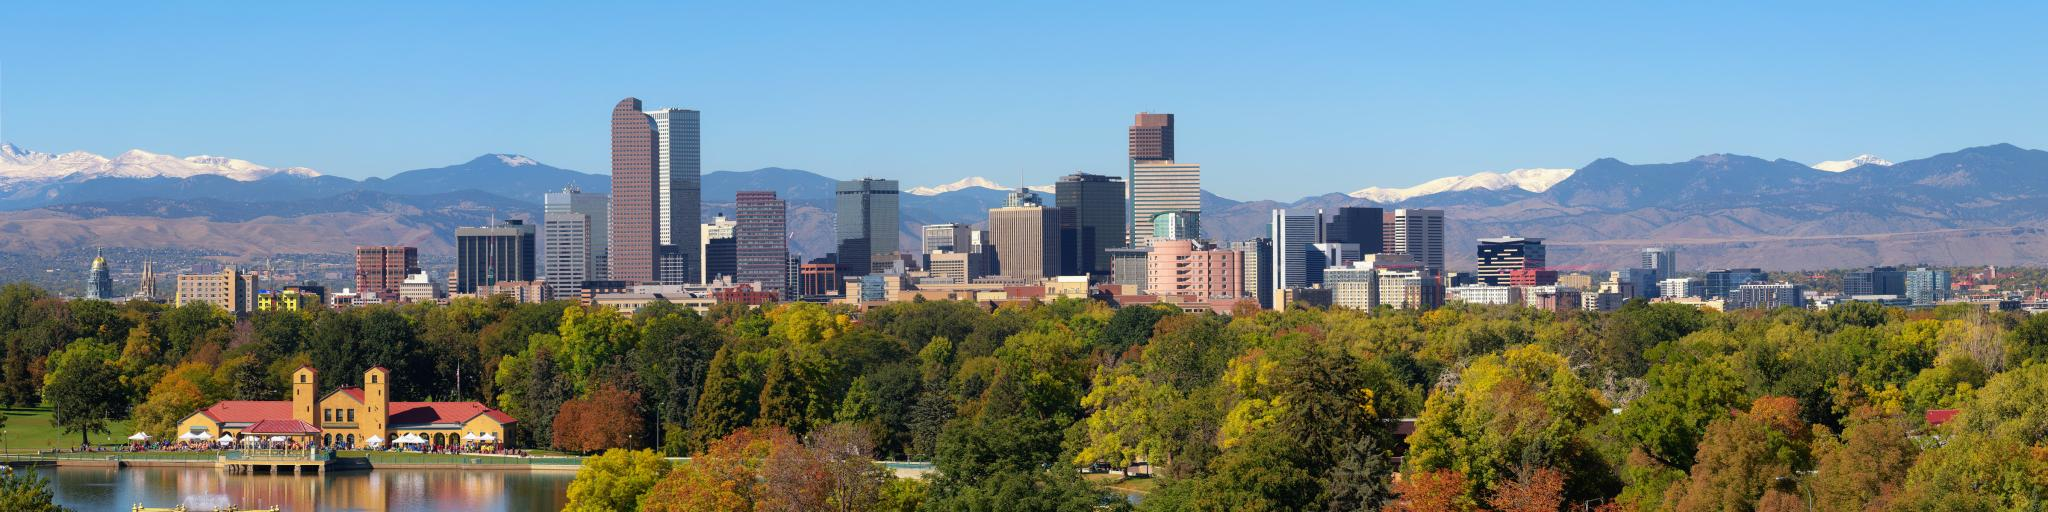 Denver city skyline with snow capped Rocky Mountains in the background